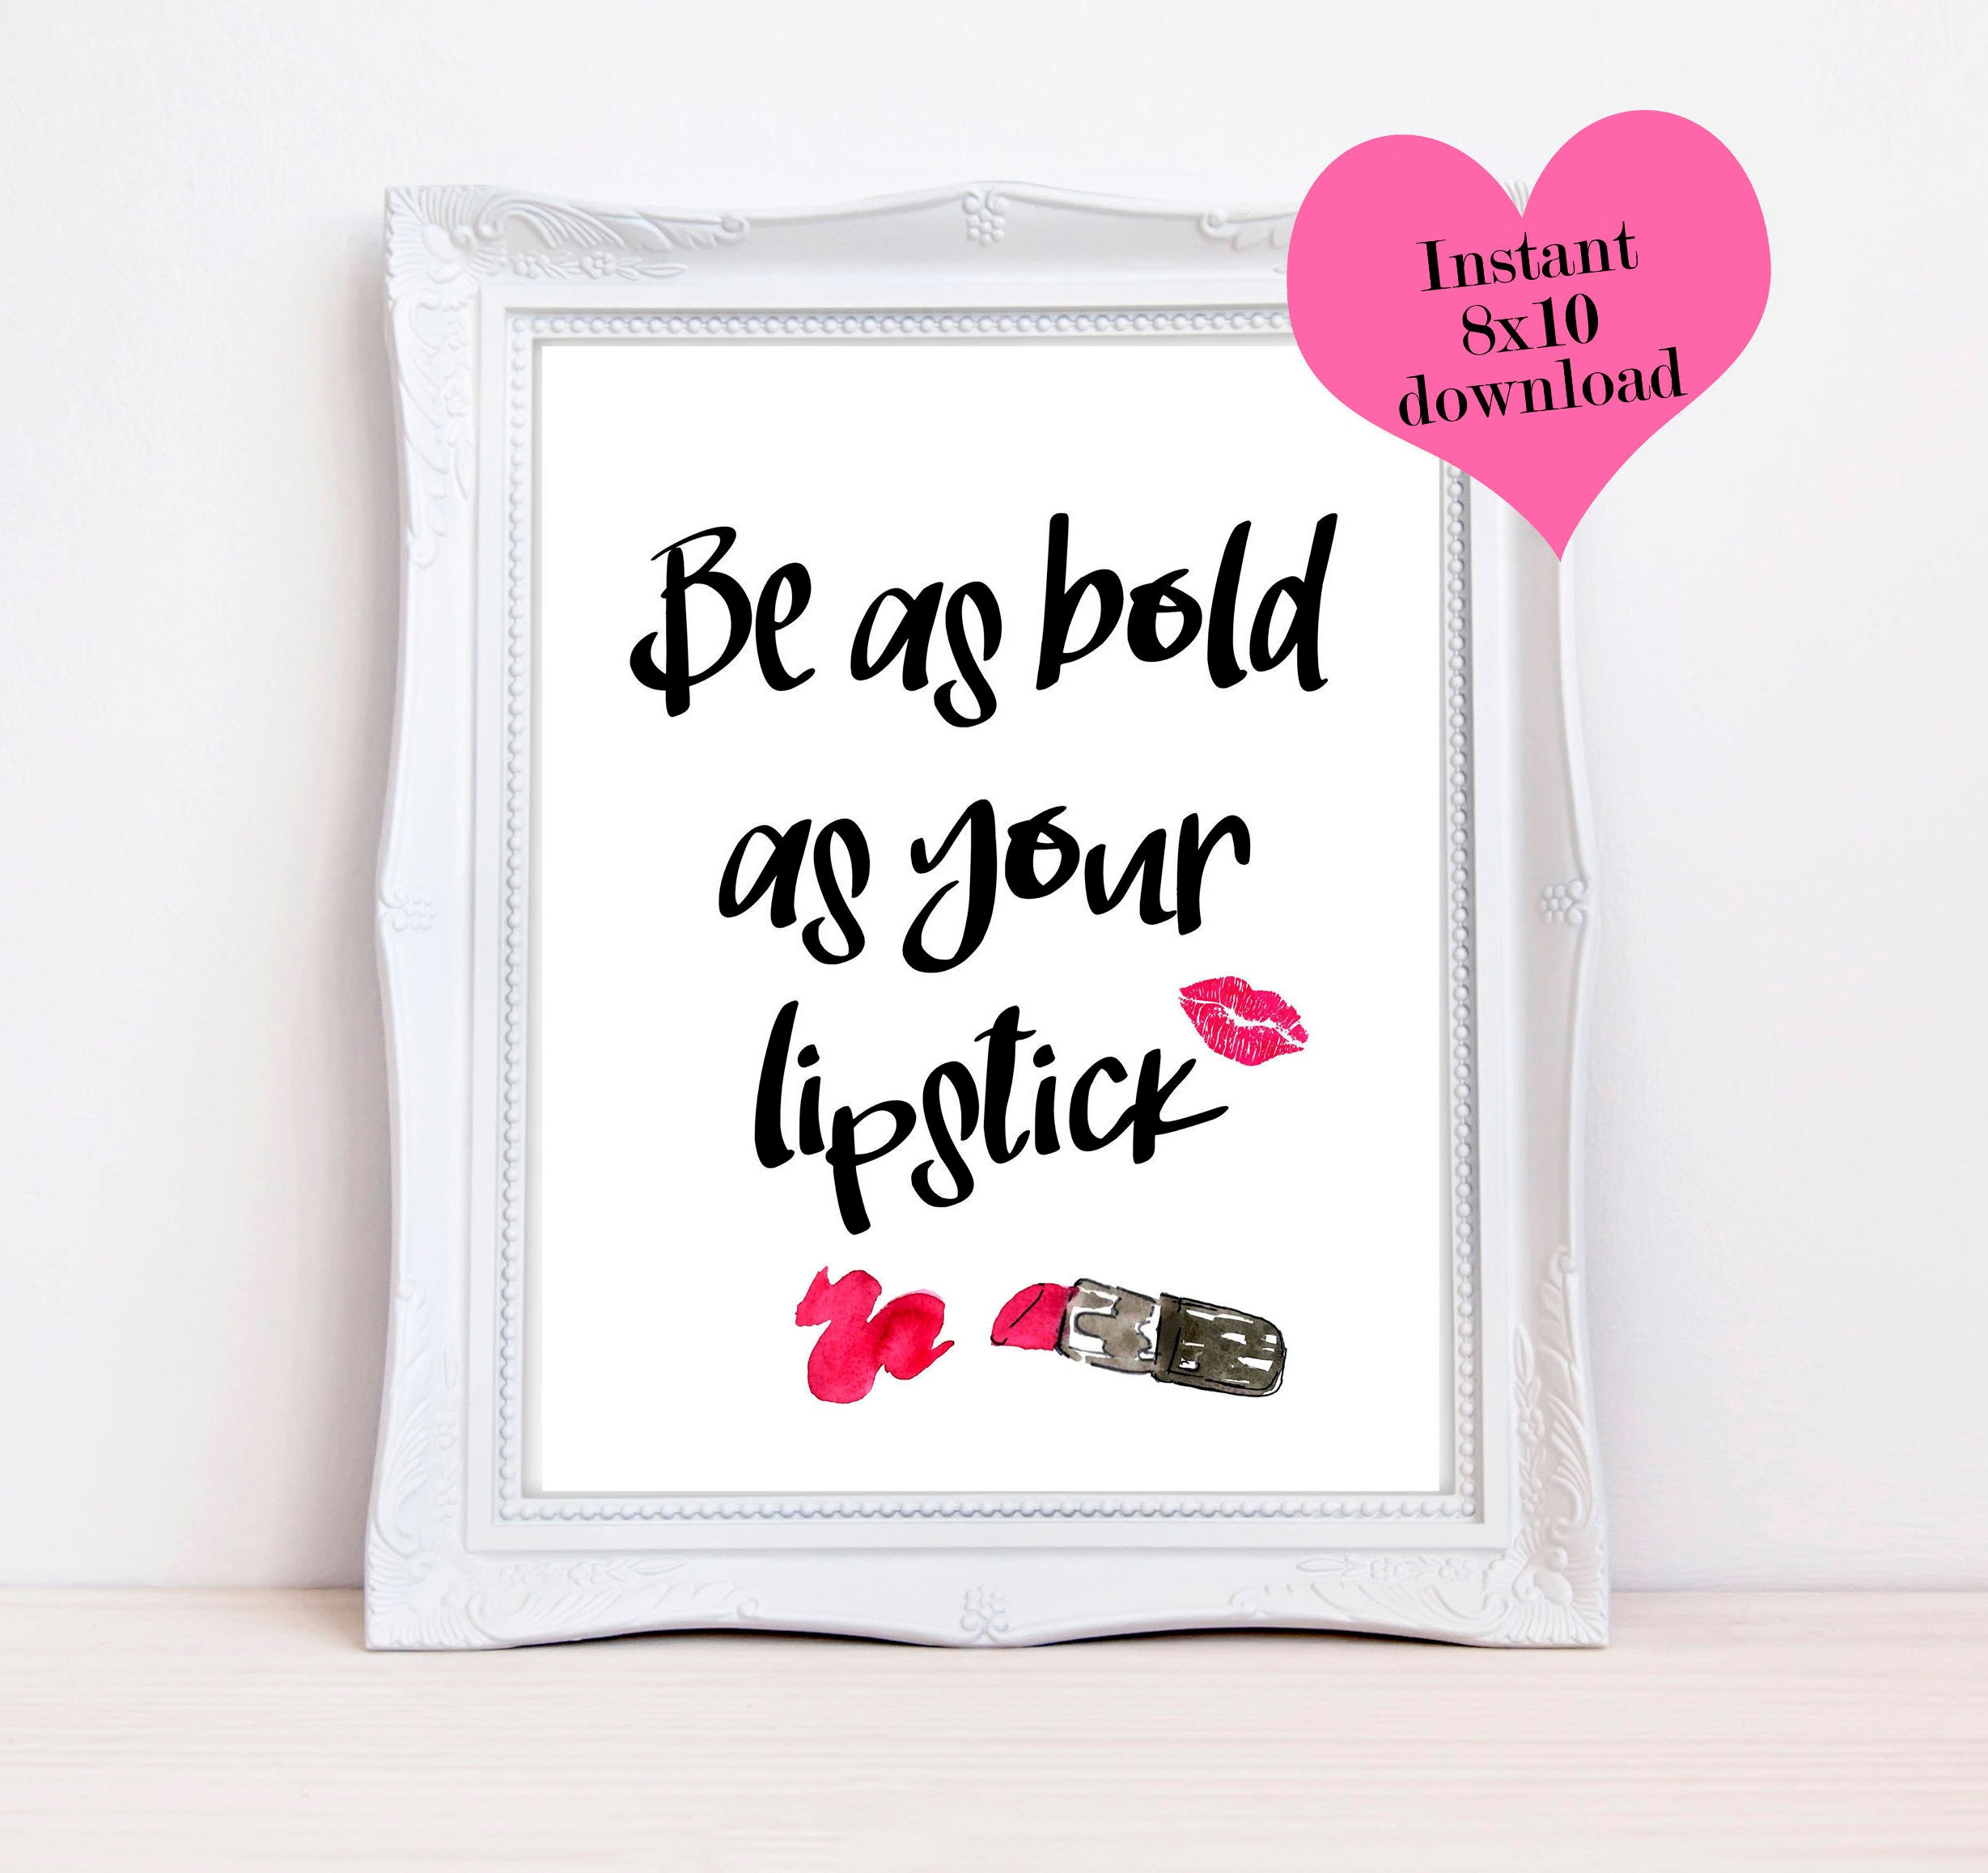 Lipstick Quotes Be As Bold As Your Lipstick Desk Accessories For Women Glam